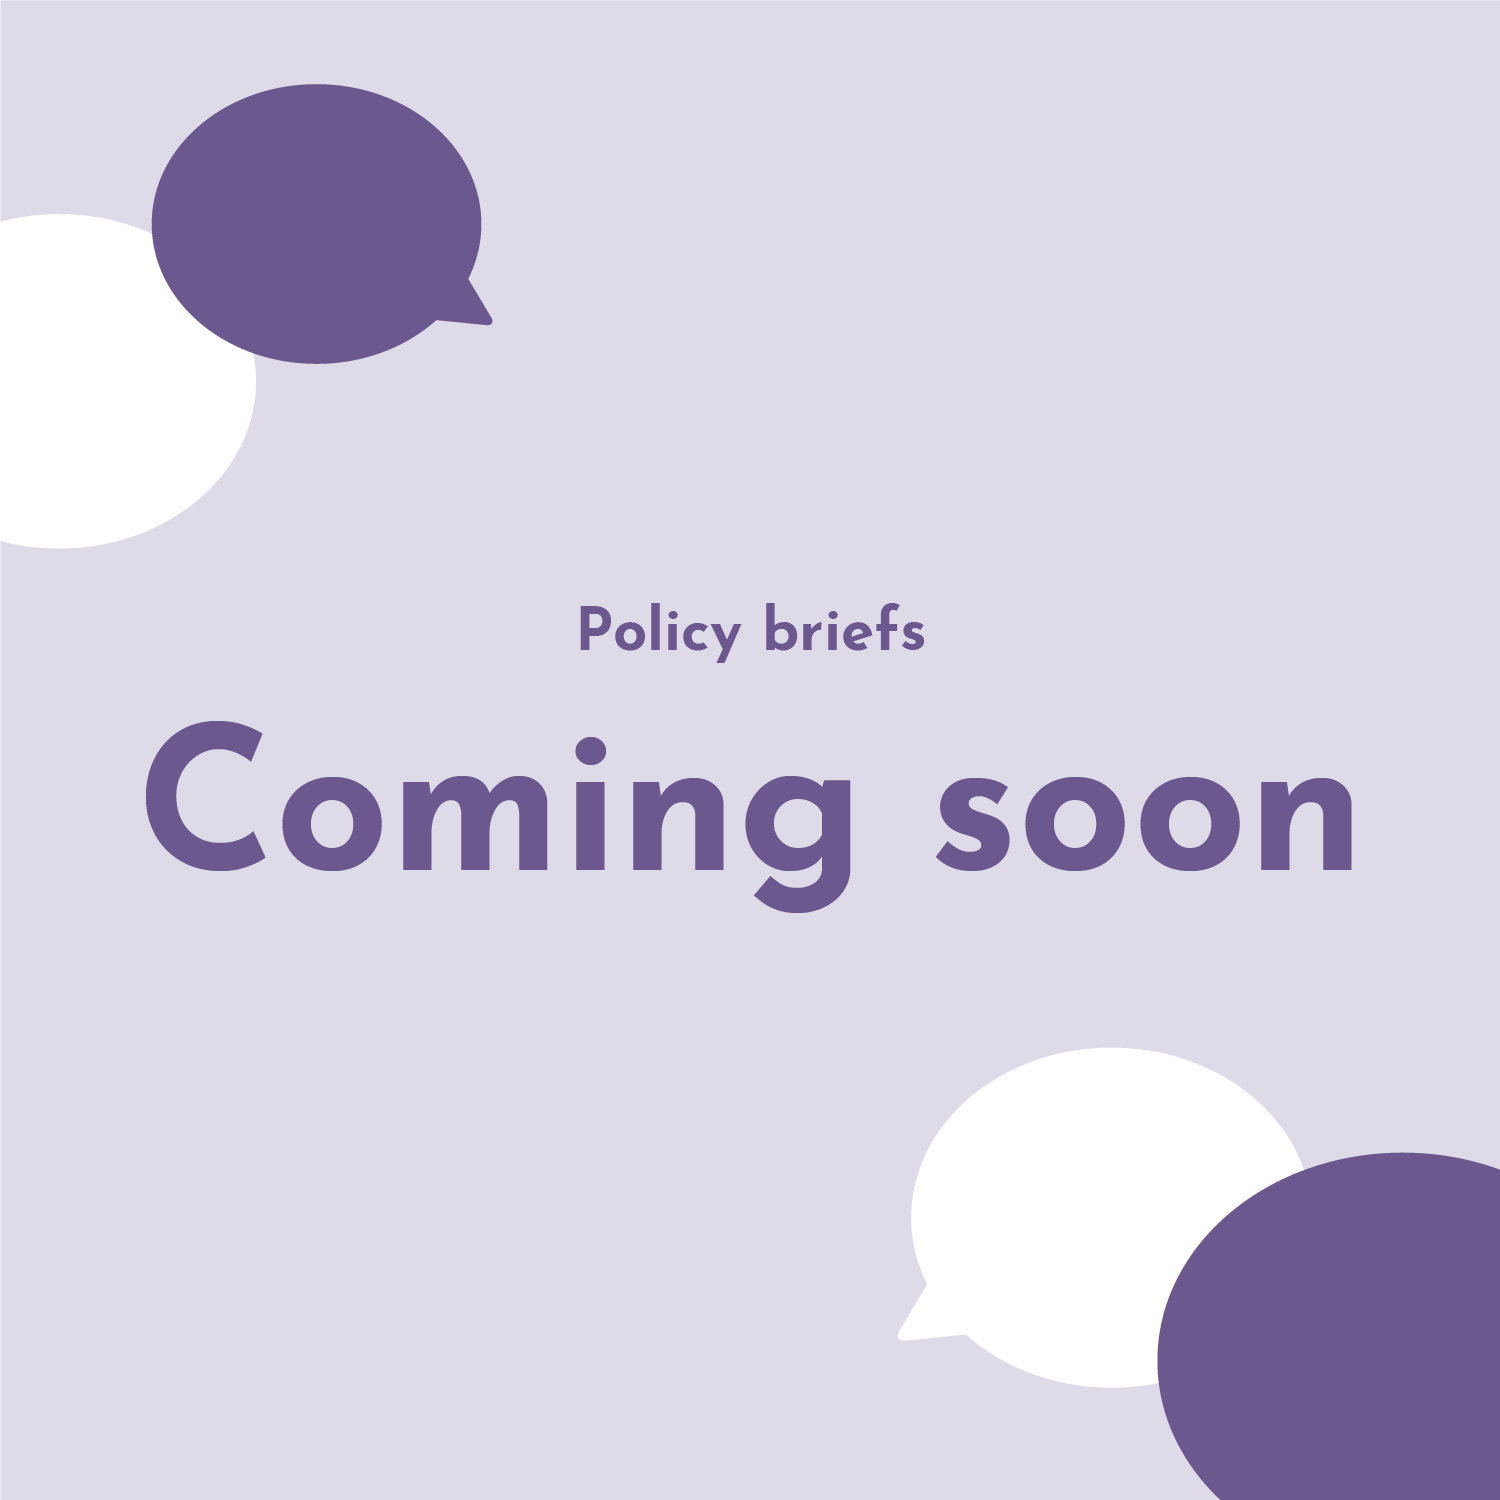 IYTT Policy Briefs - Coming soon